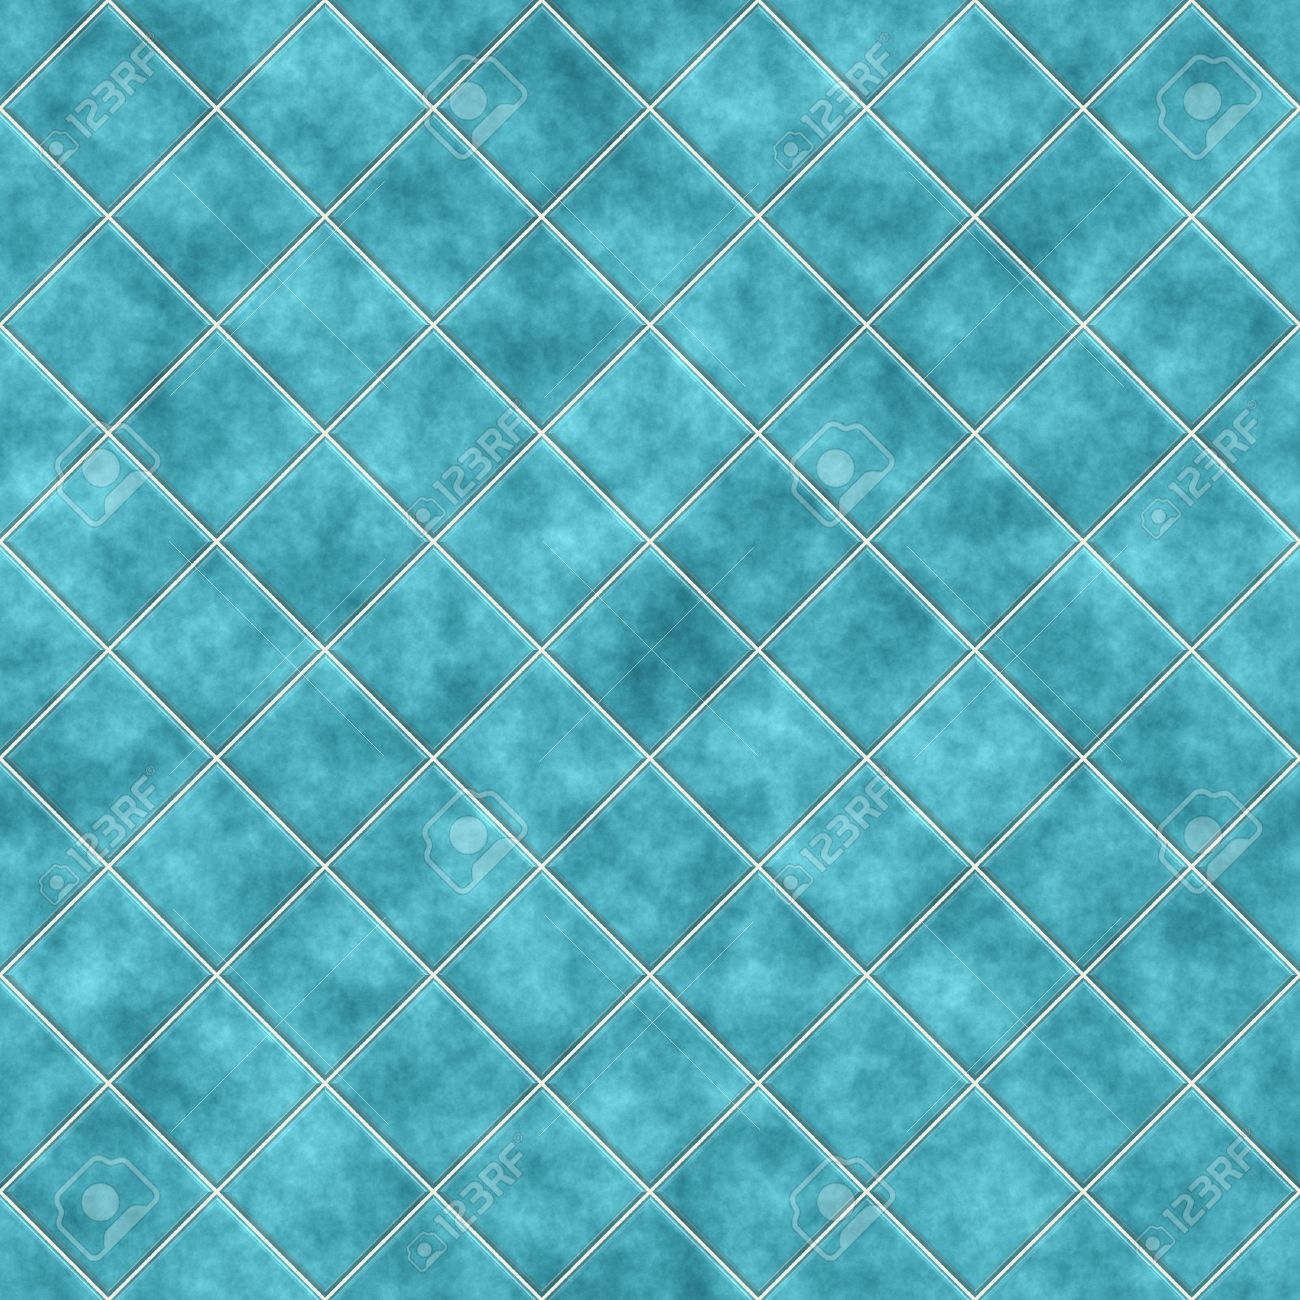 Bathroom Tiles Texture exellent kitchen blue tiles texture delightful bathroom tile to